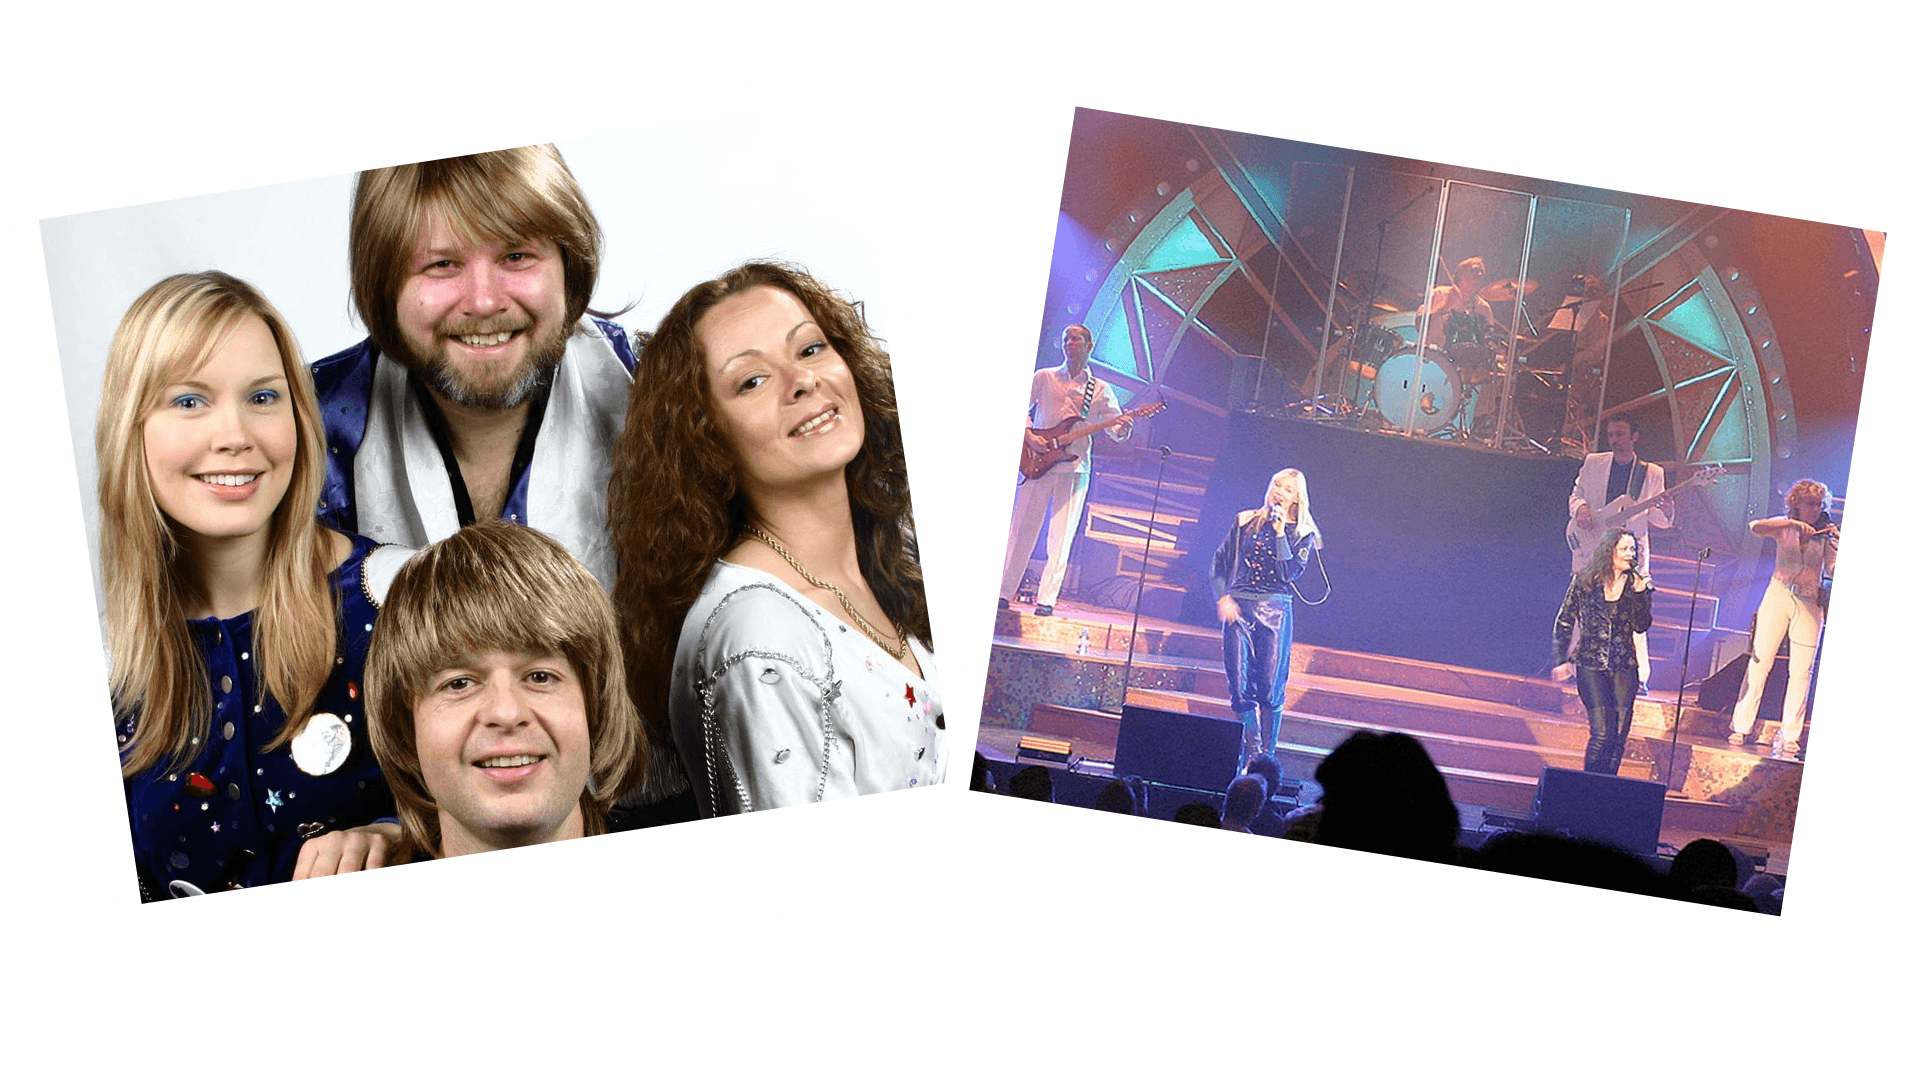 Tribute to ABBA with ABBAmania